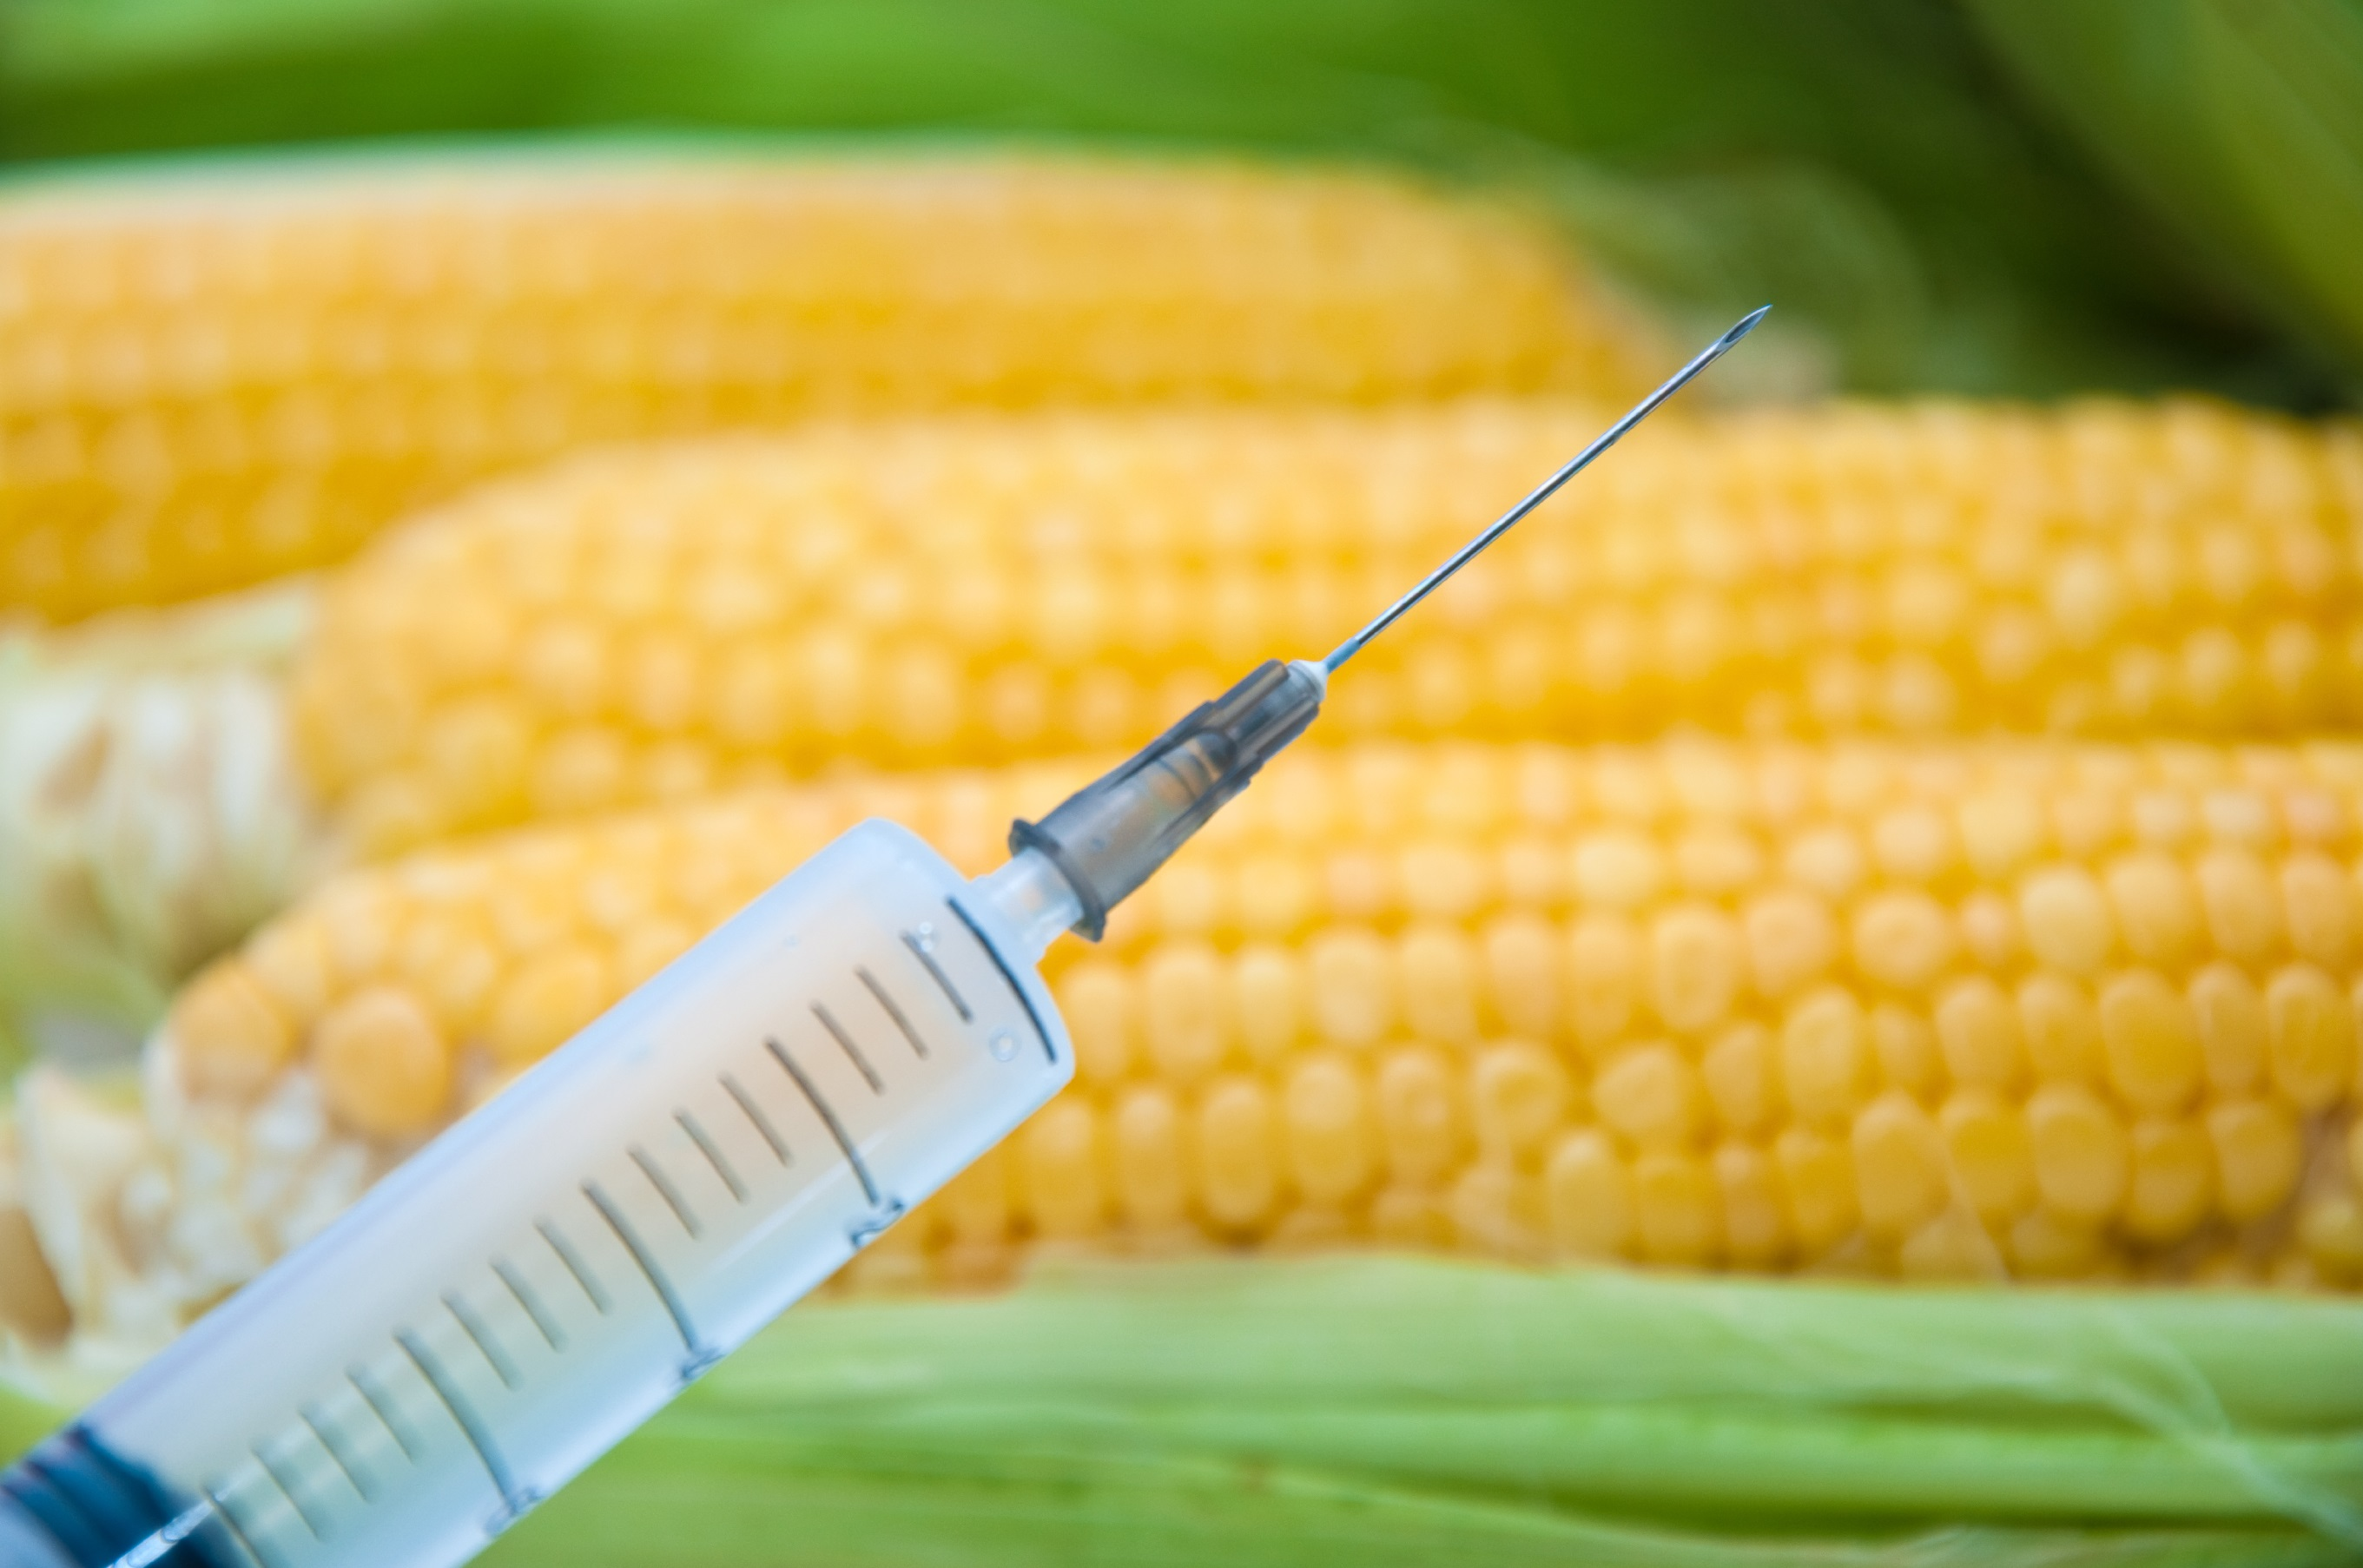 Corn plants that make anti-sperm antibodies